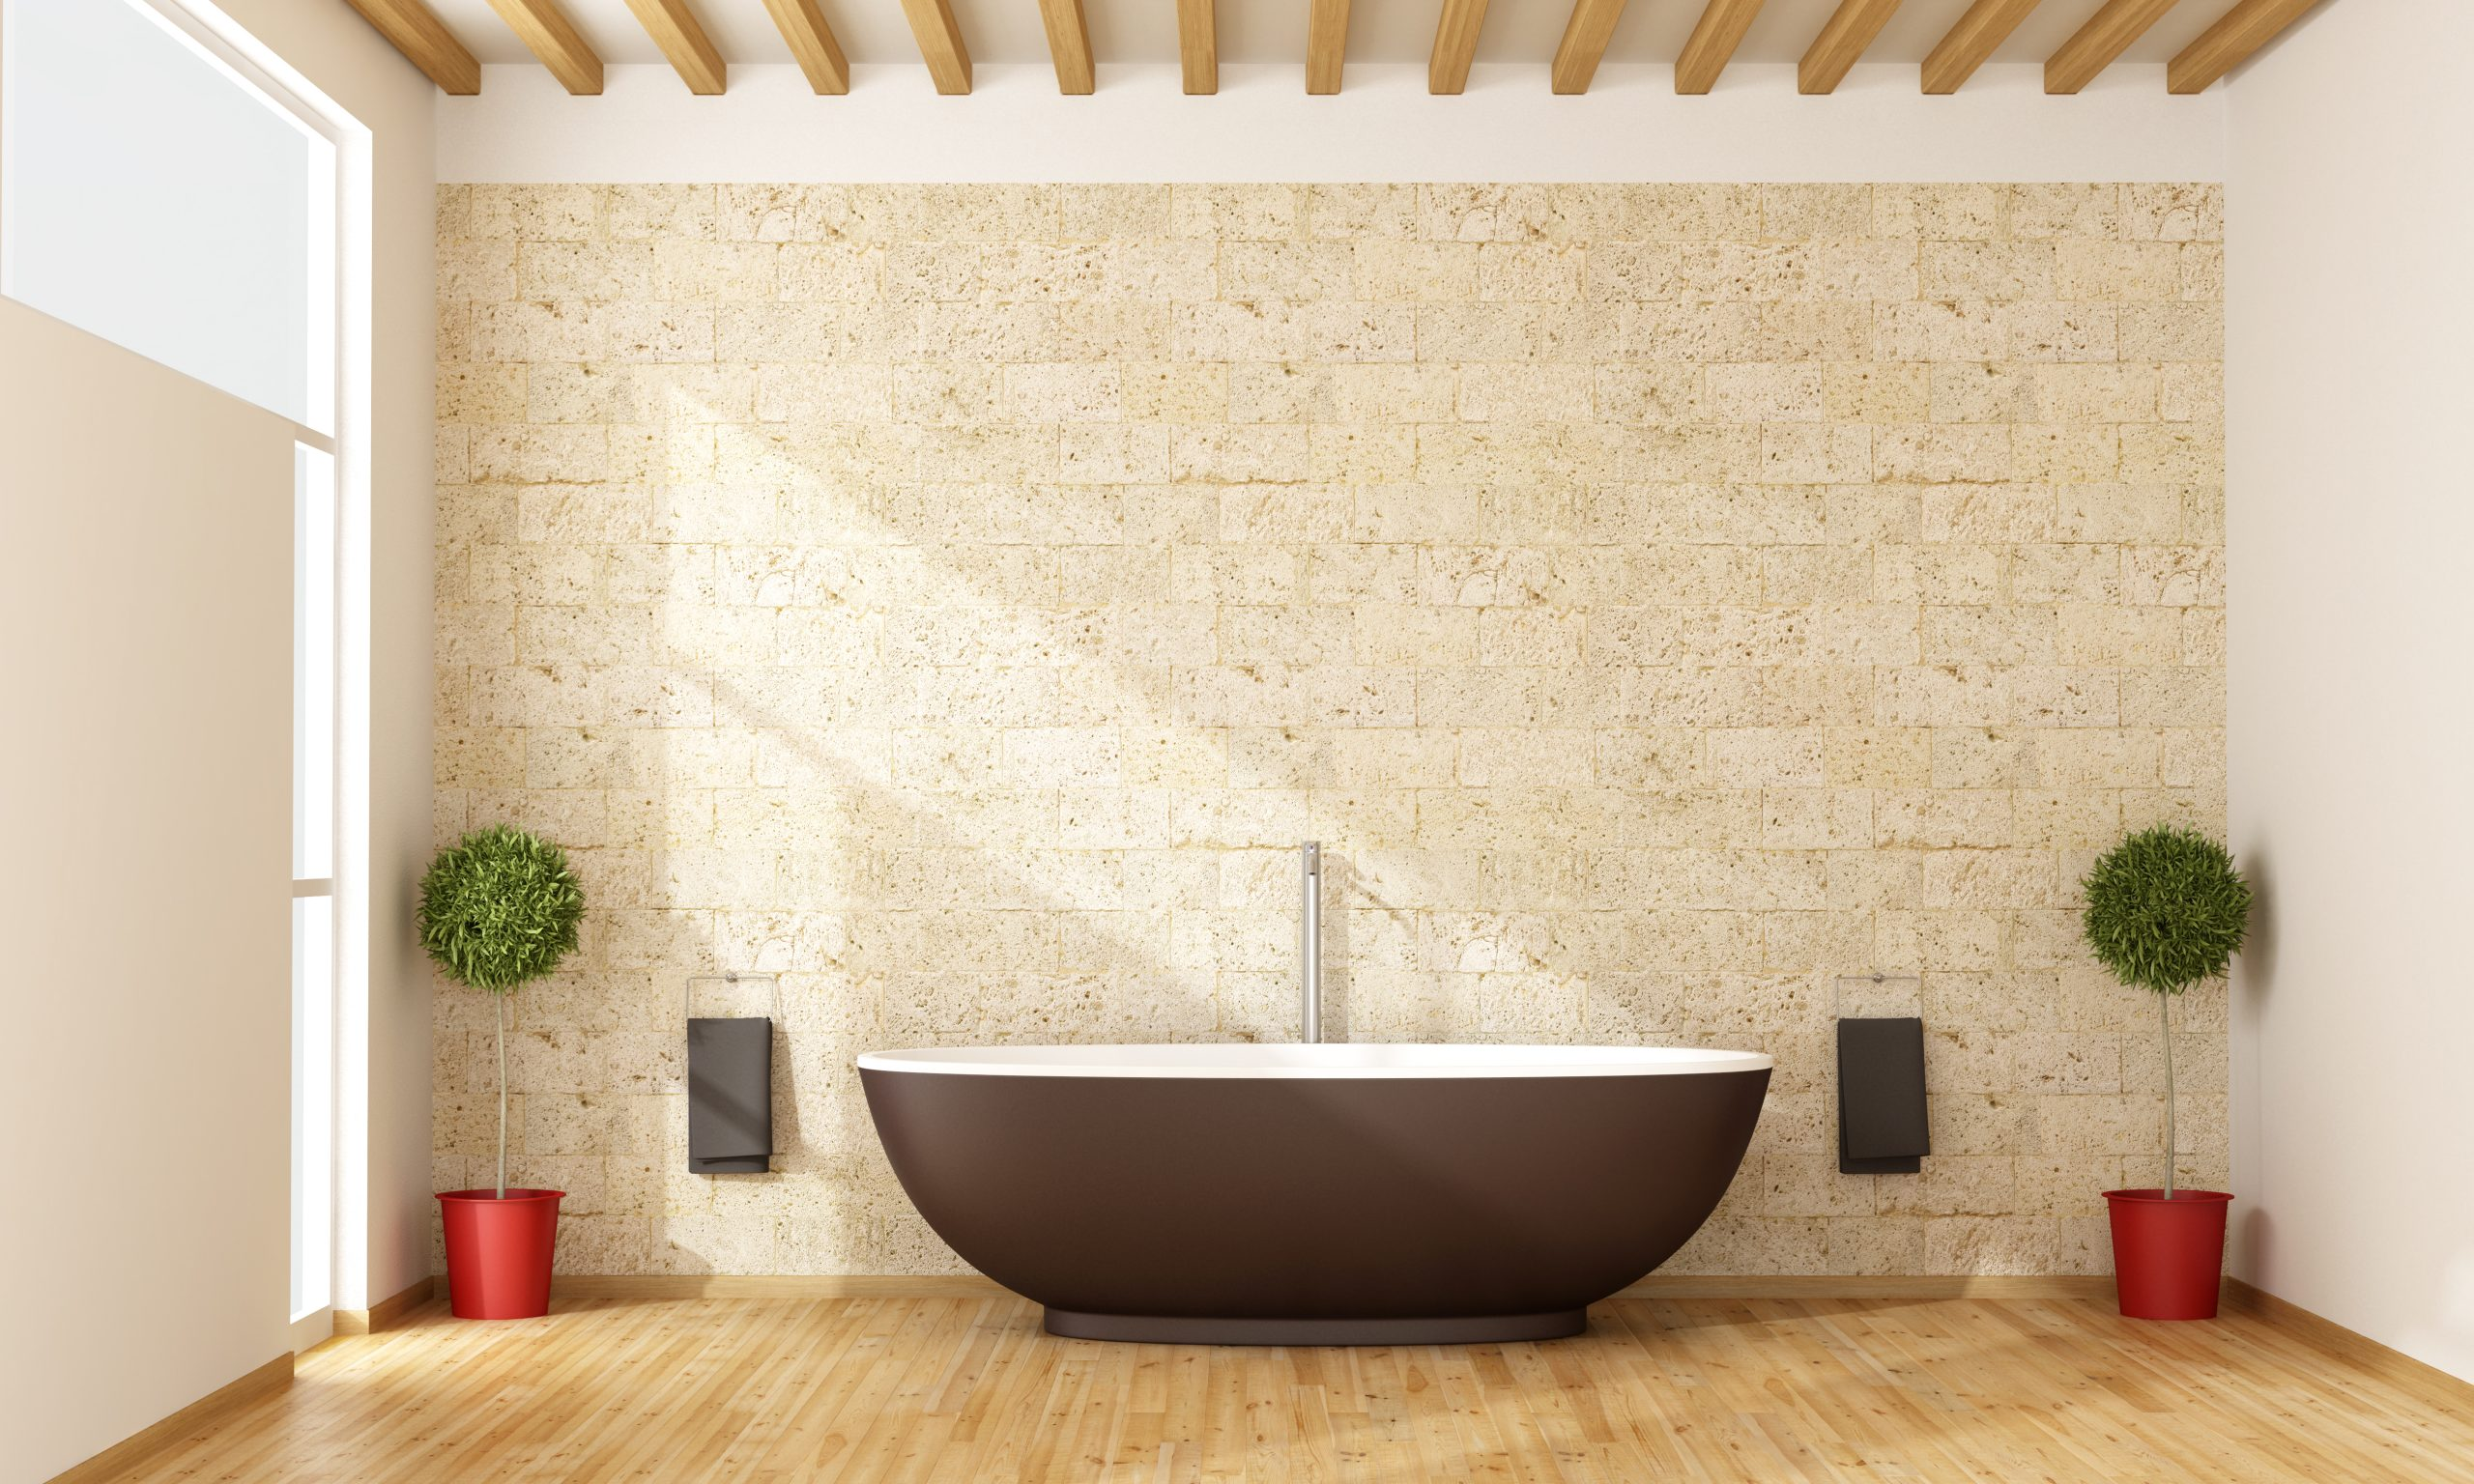 Bathroom Remodeling in Phoenix, Arizona - Superstition Contracting2